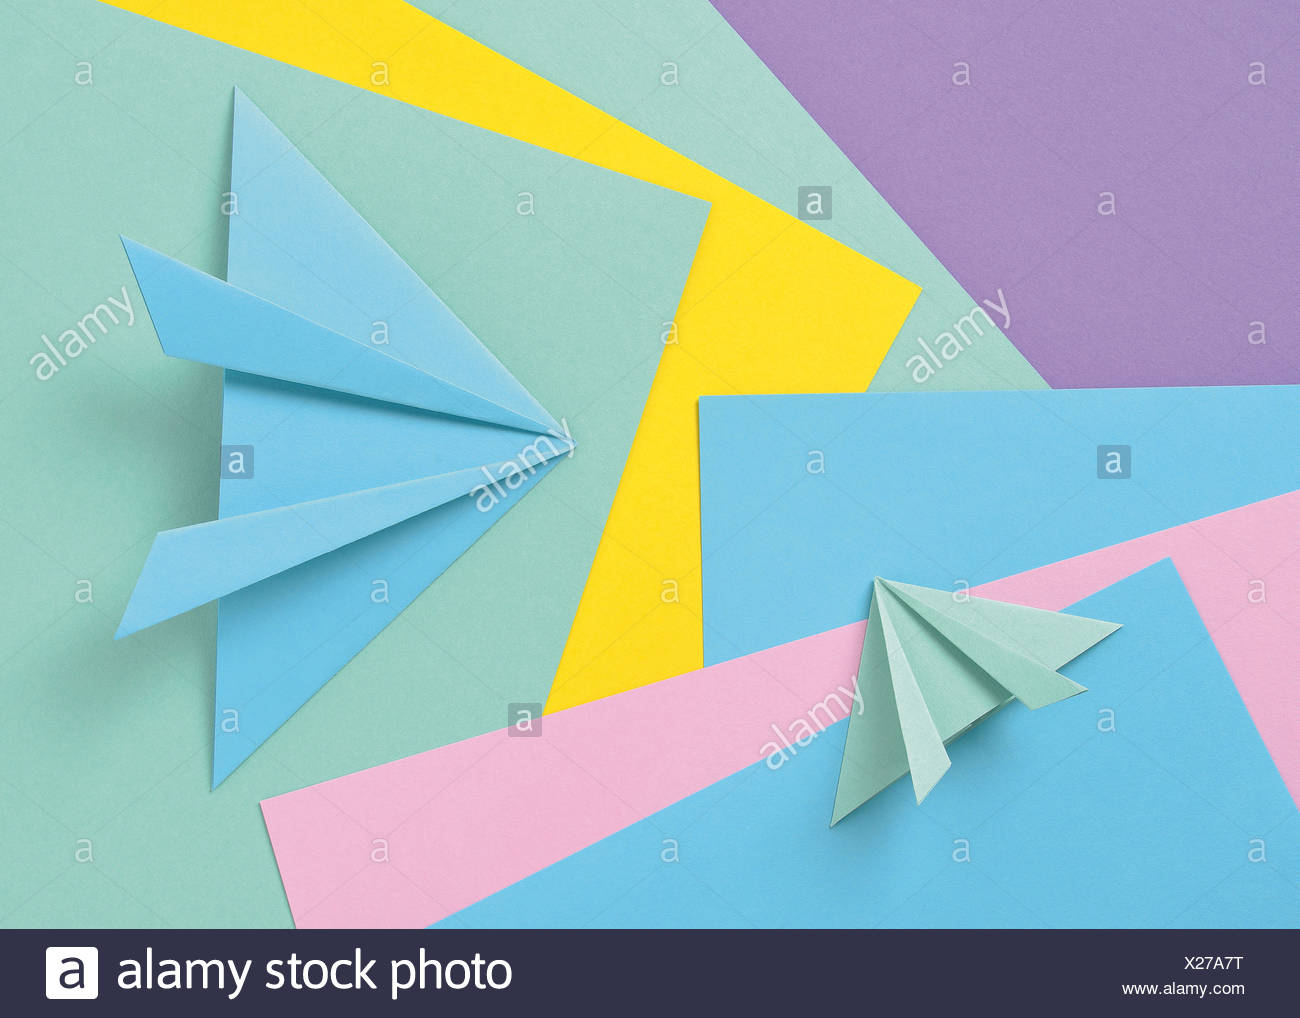 Colored paper origami - Stock Image